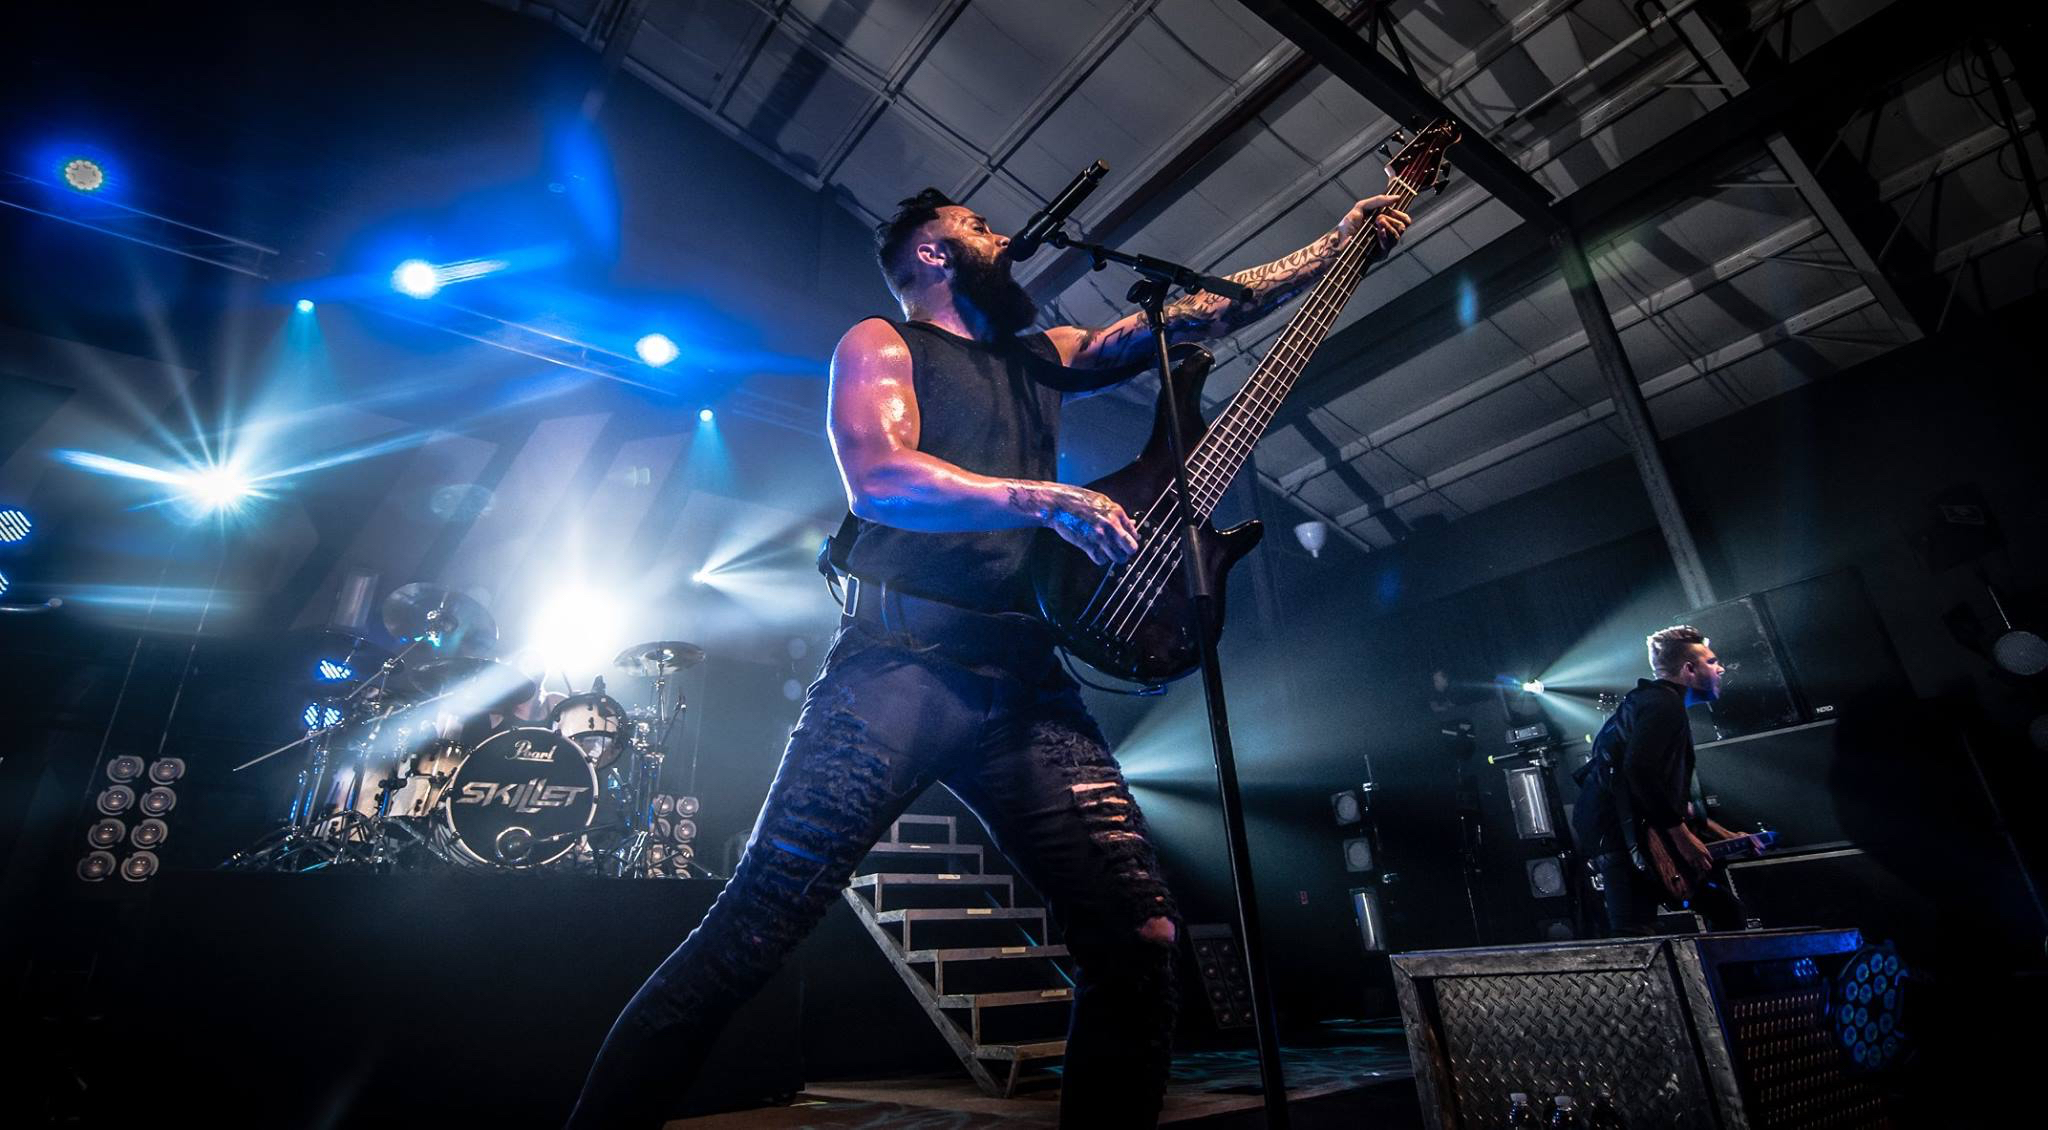 Of God and Metal: A Conversation With Skillet's John Cooper – ListenIowa